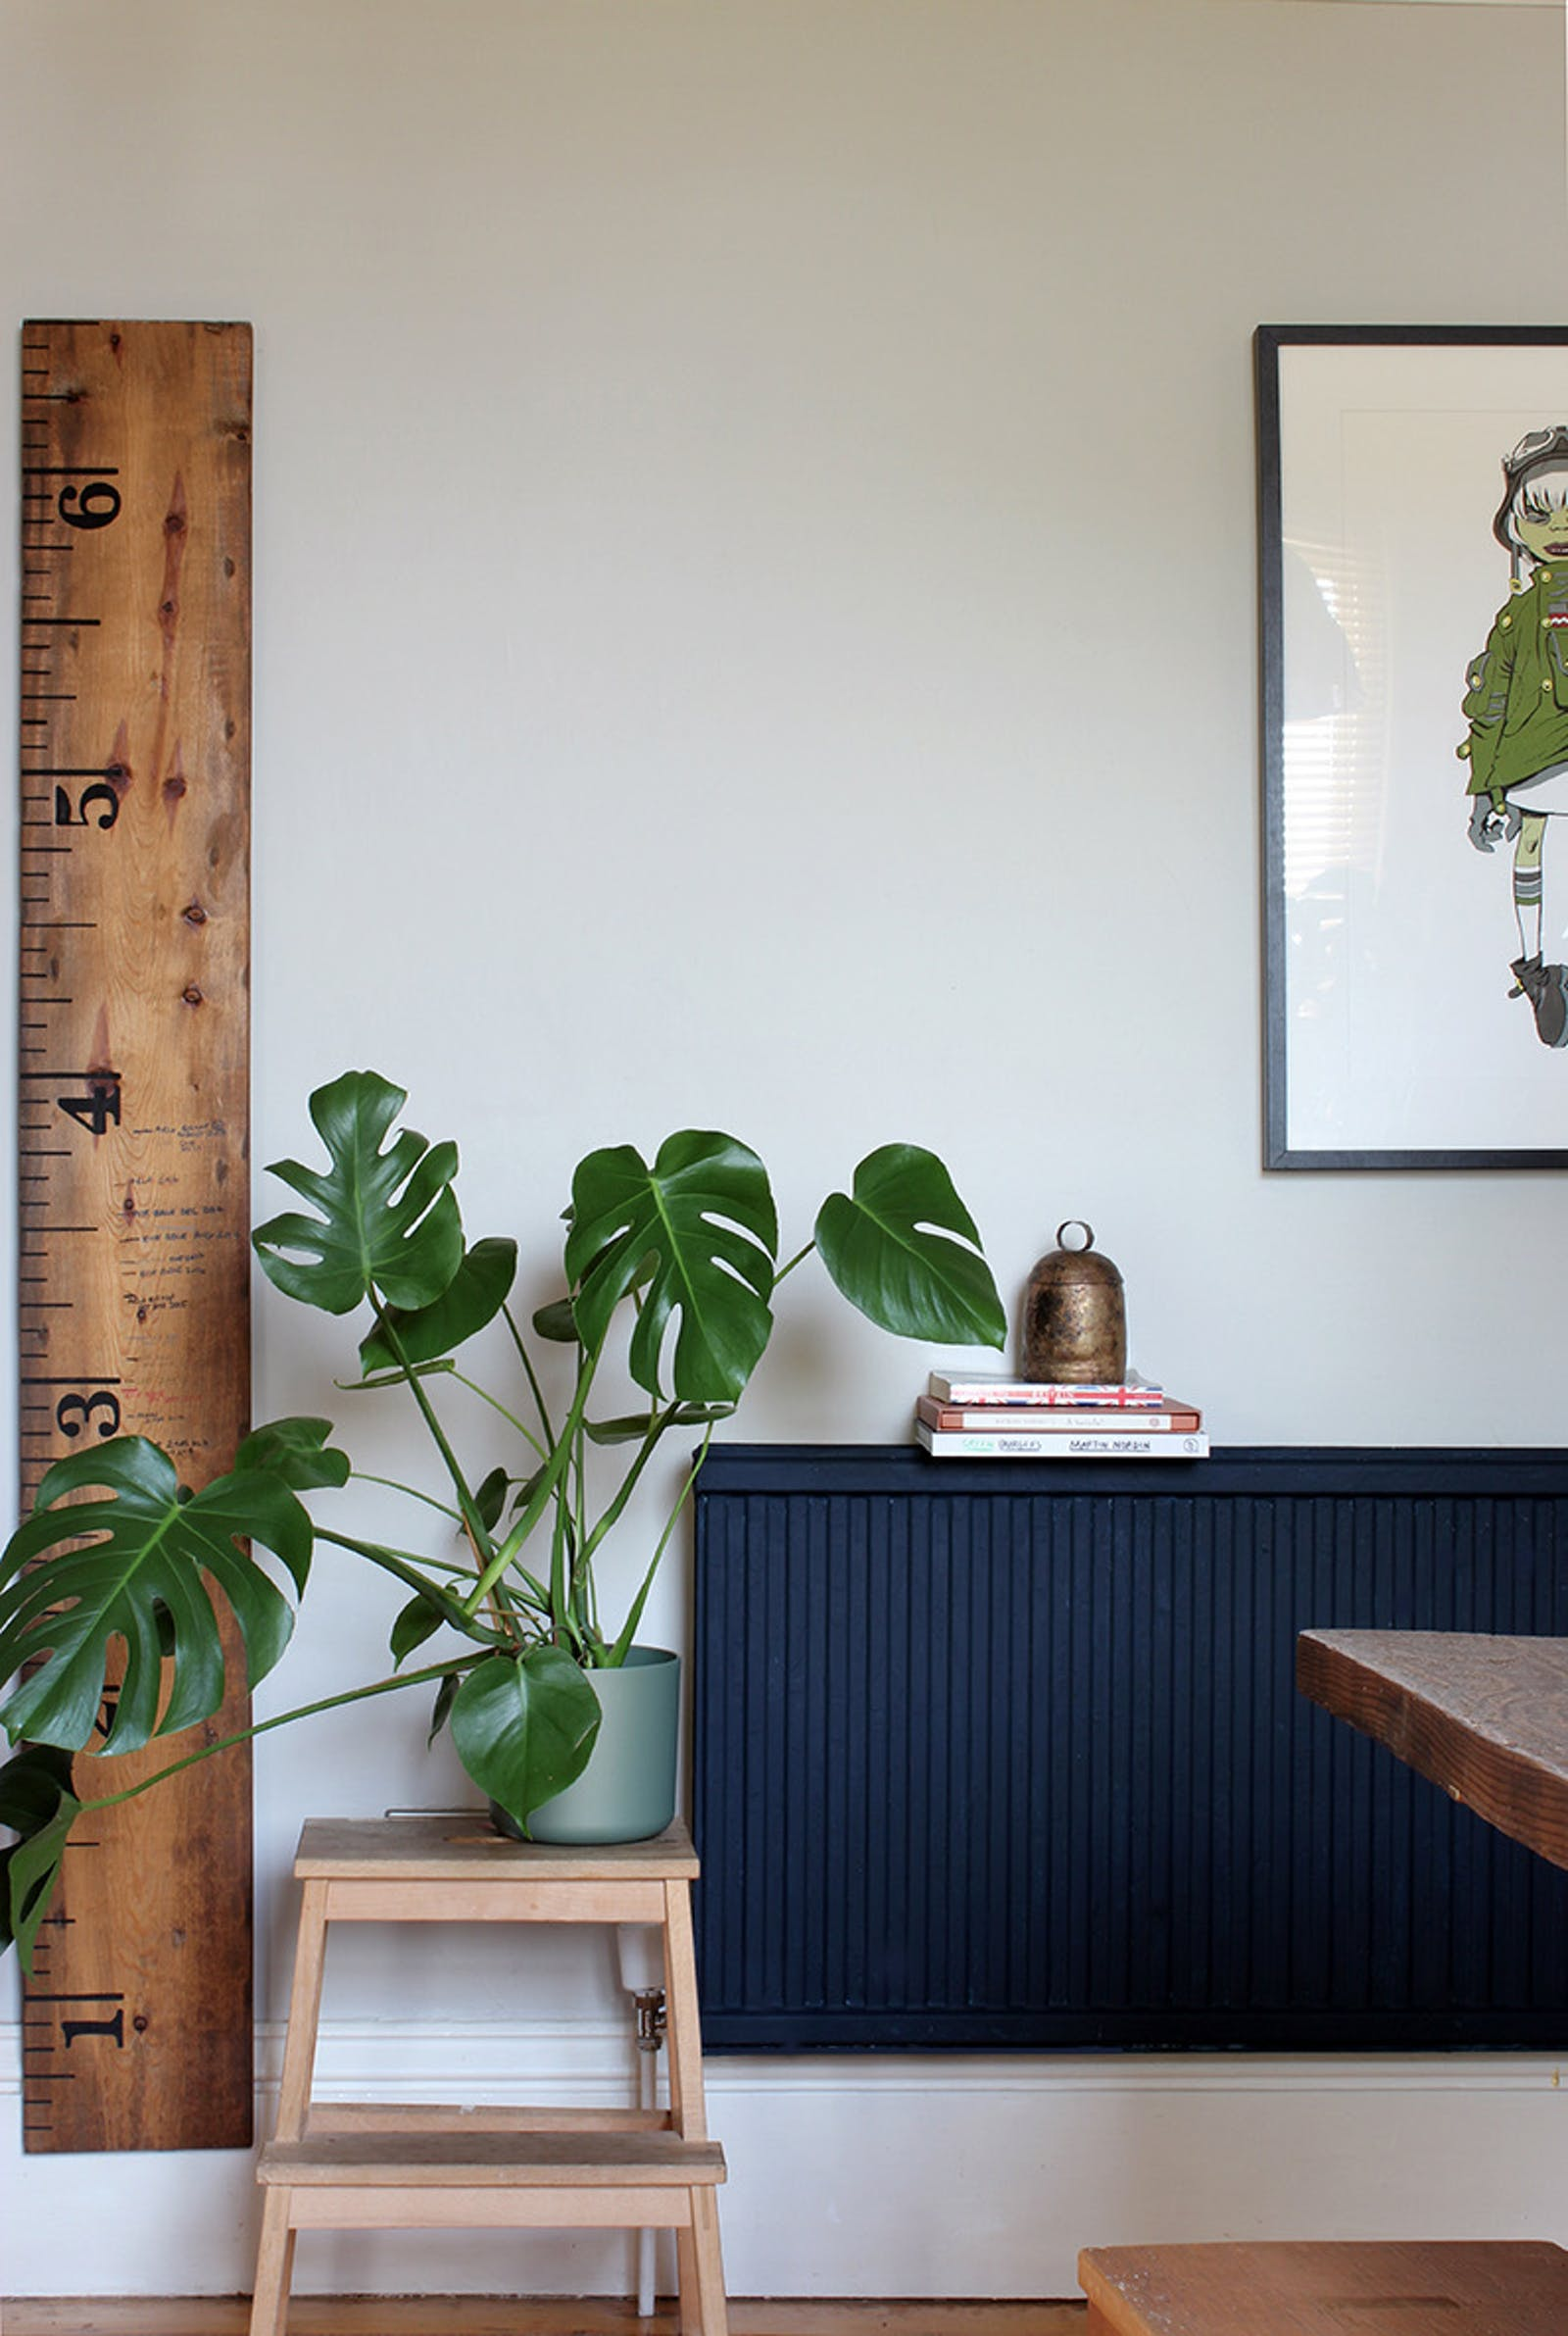 Dining area with cheese plant and a navy blue painted radiator